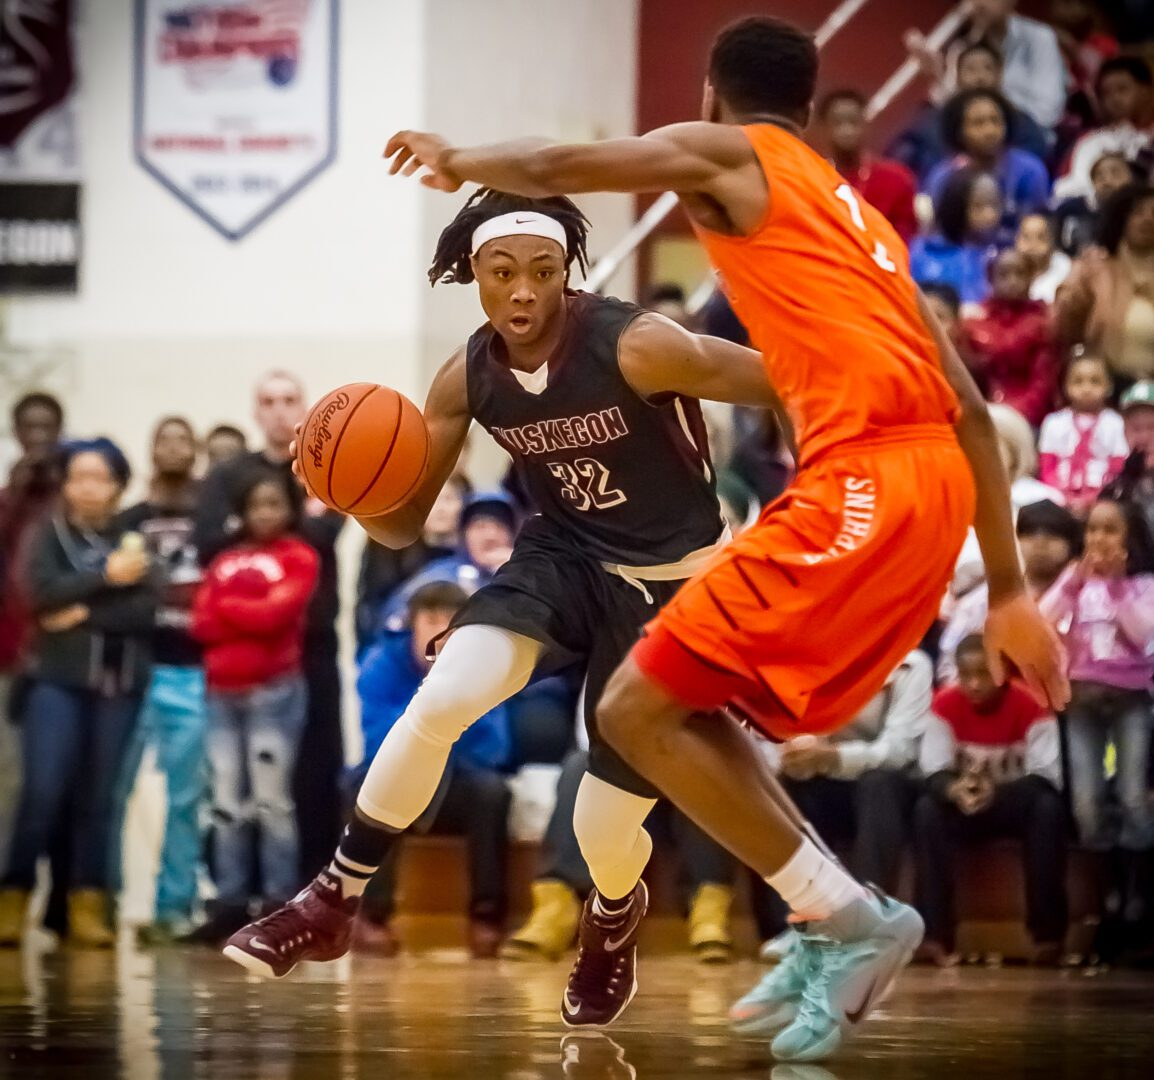 Muskegon Big Reds pound Chicago Whitney Young 76-52; Kennedy surpasses 1,000-point career mark